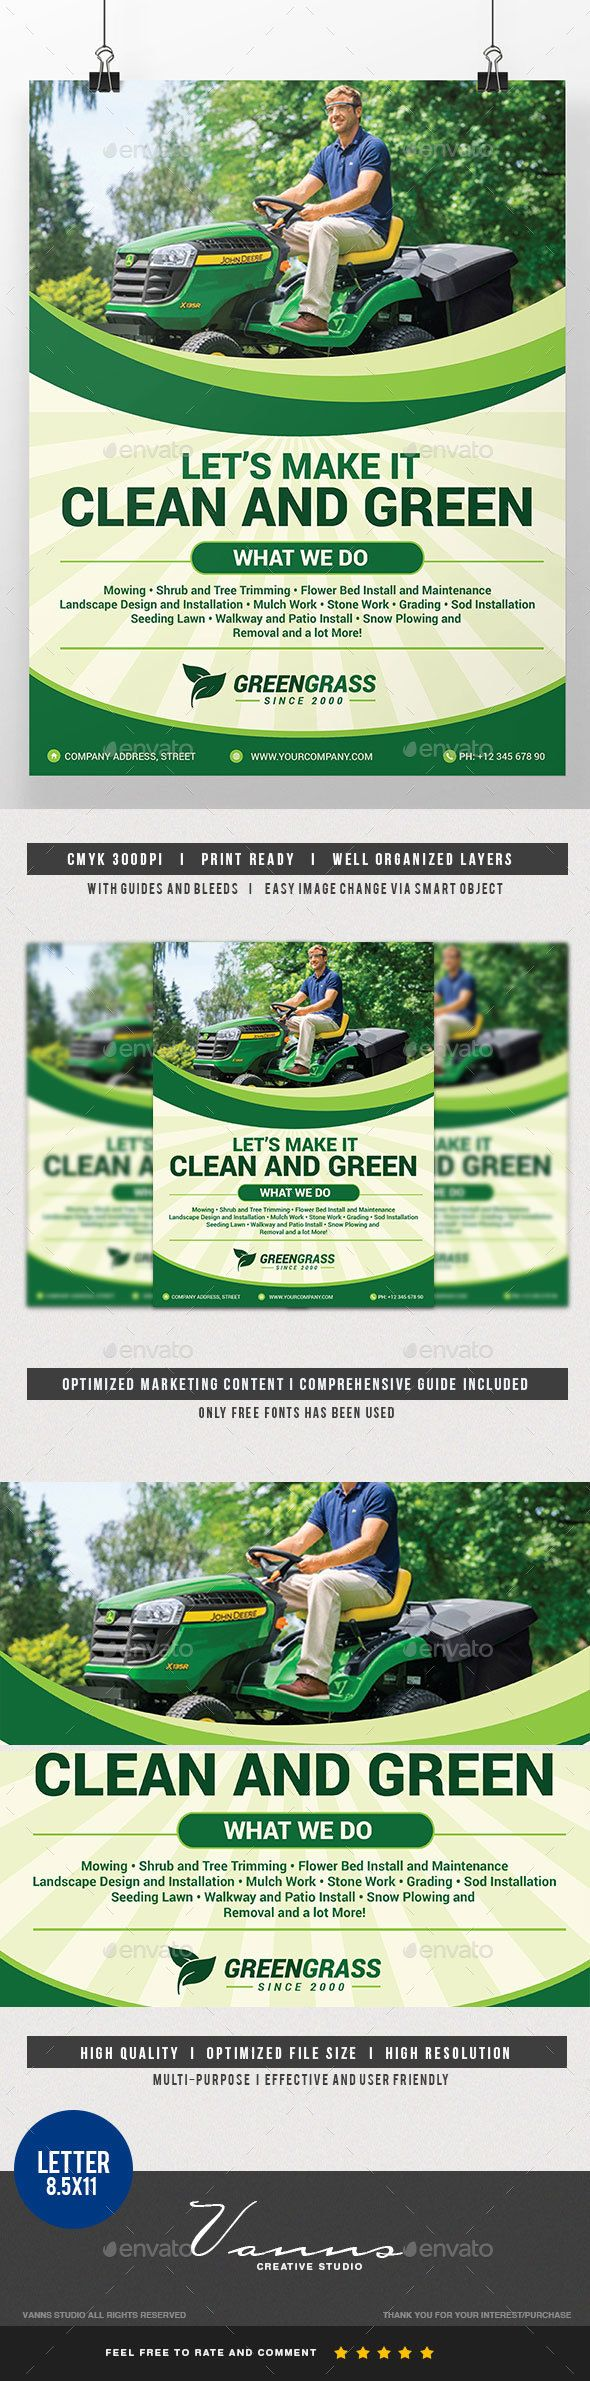 Reliable lawn care and mowing services at competitive prices - Mowing Service Flyer